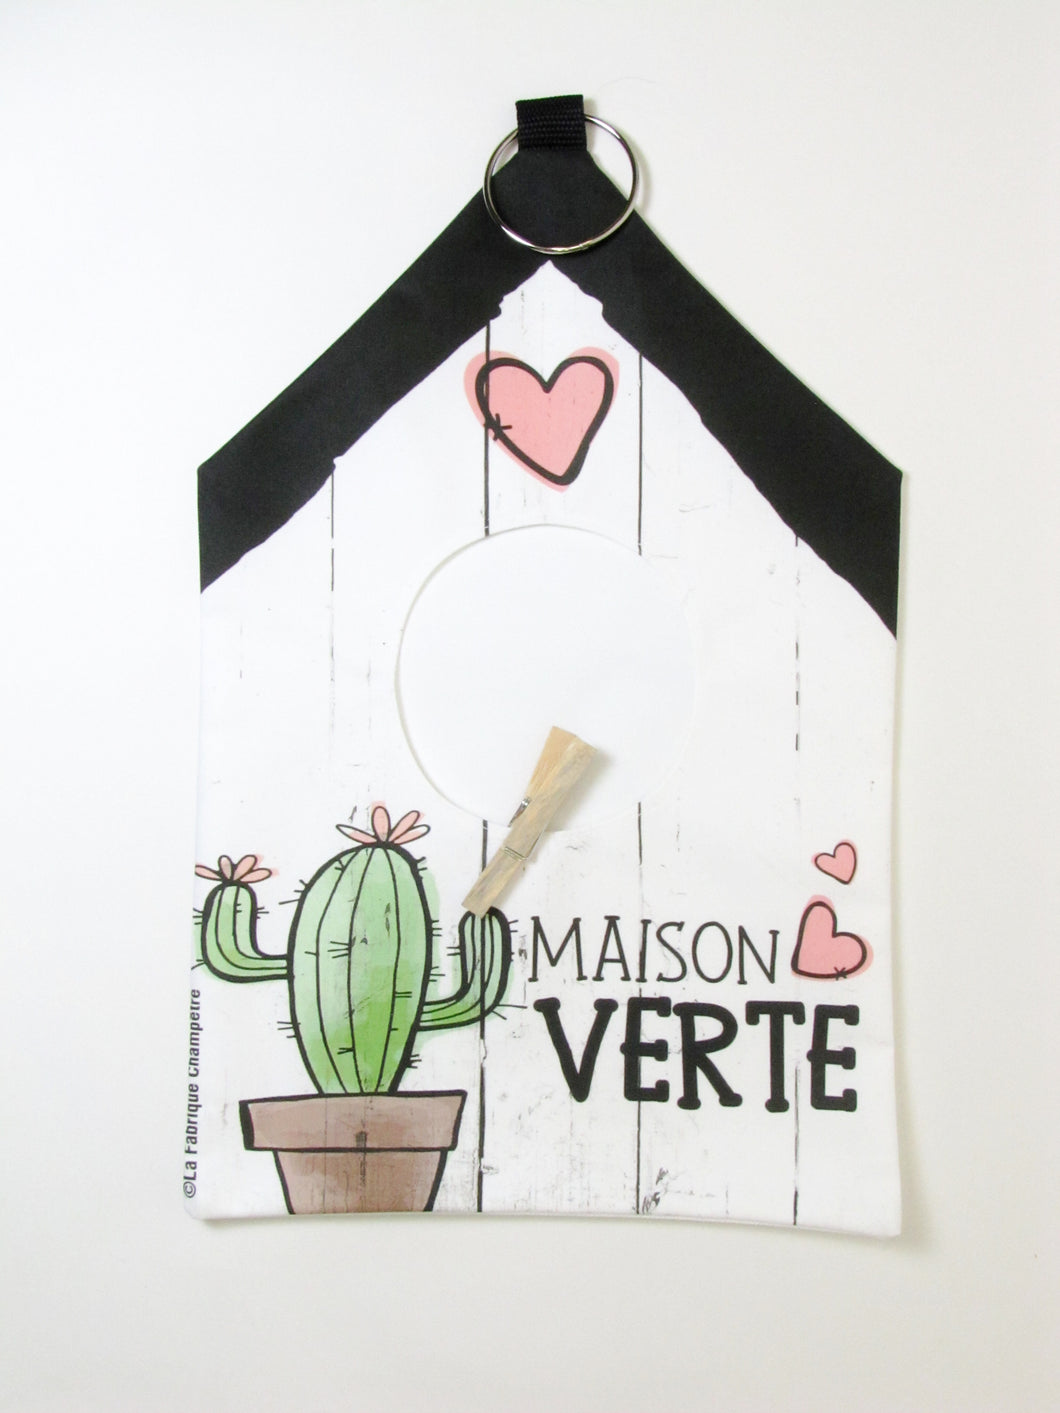 Sac à épingle - Maison verte